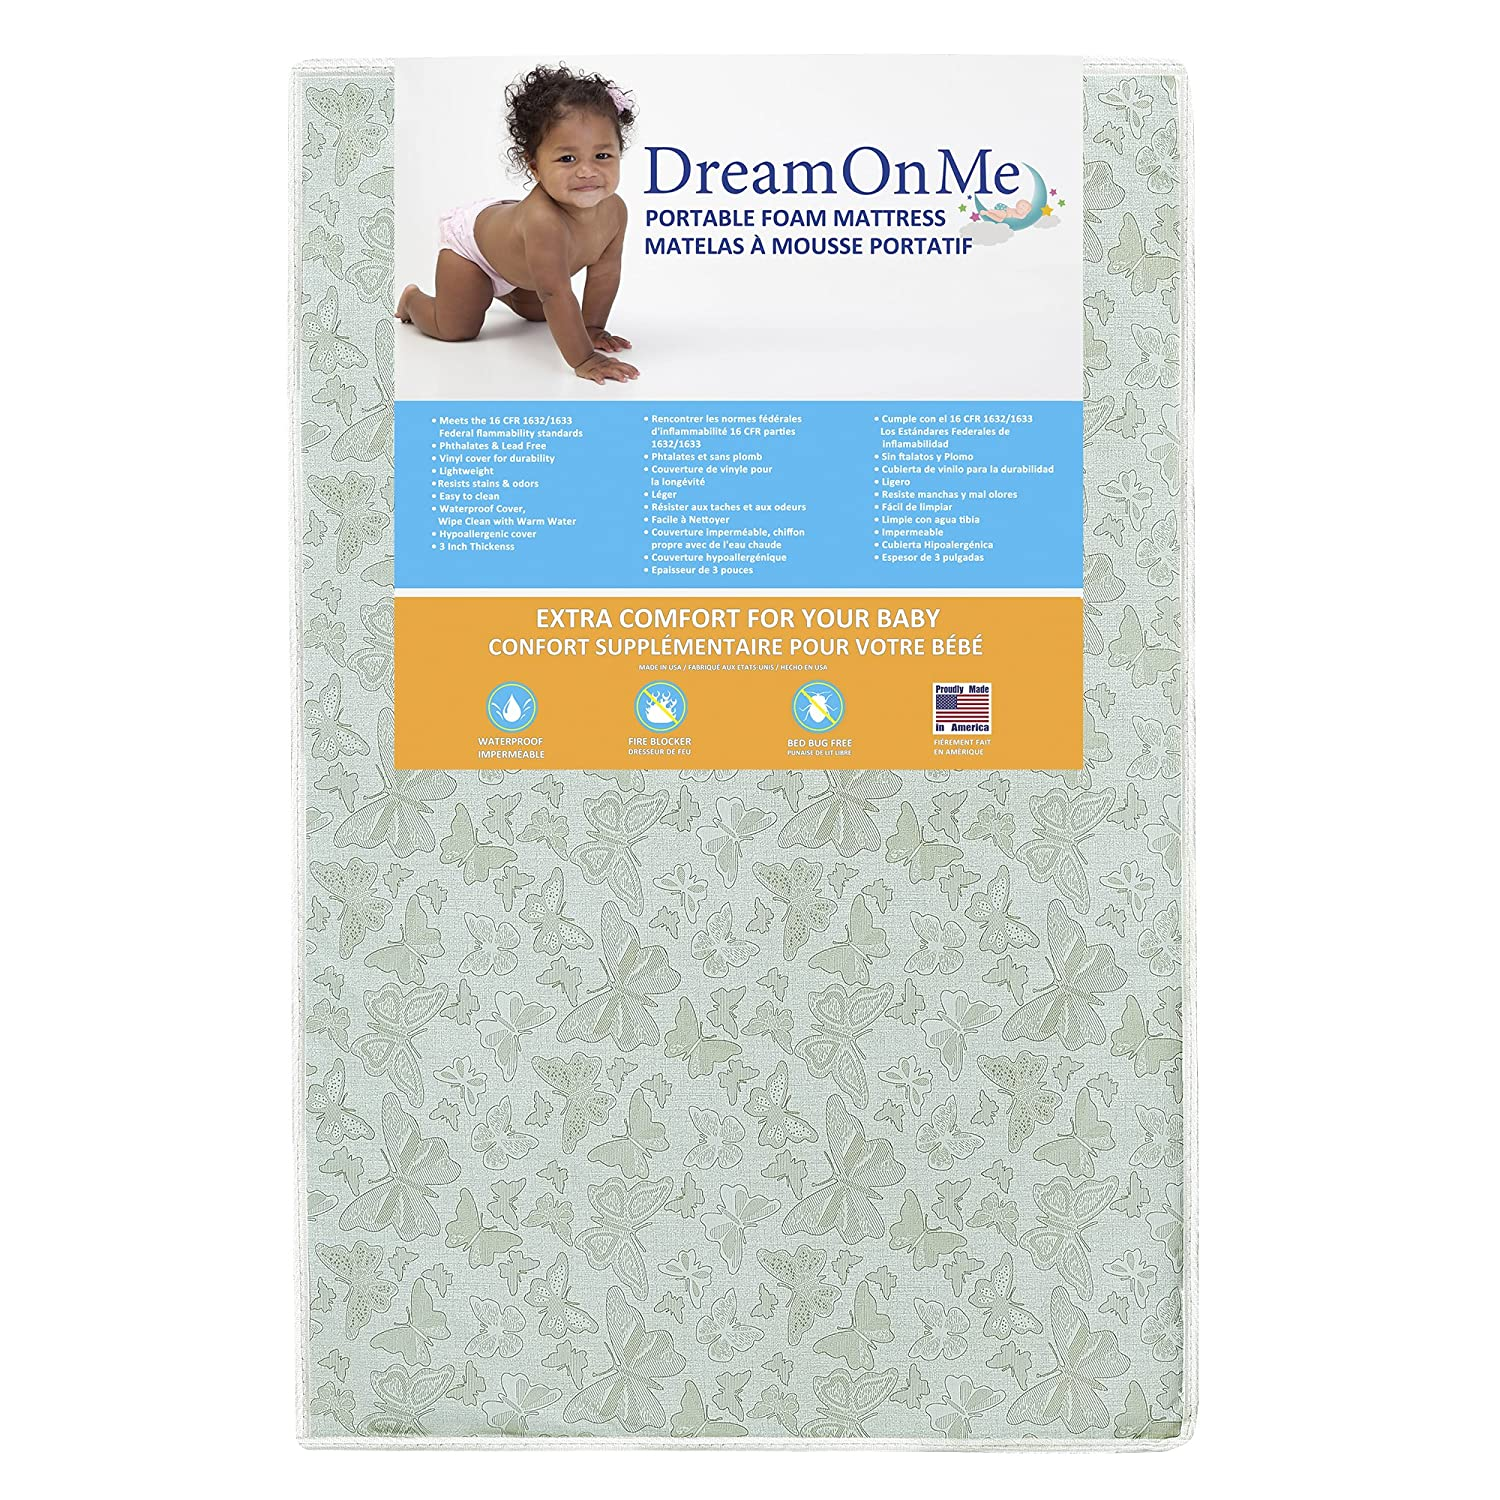 Dream On Me 3 Two-Sided, Mini Portable Crib Foam Mattress Dream On Me 3 Two-Sided 22